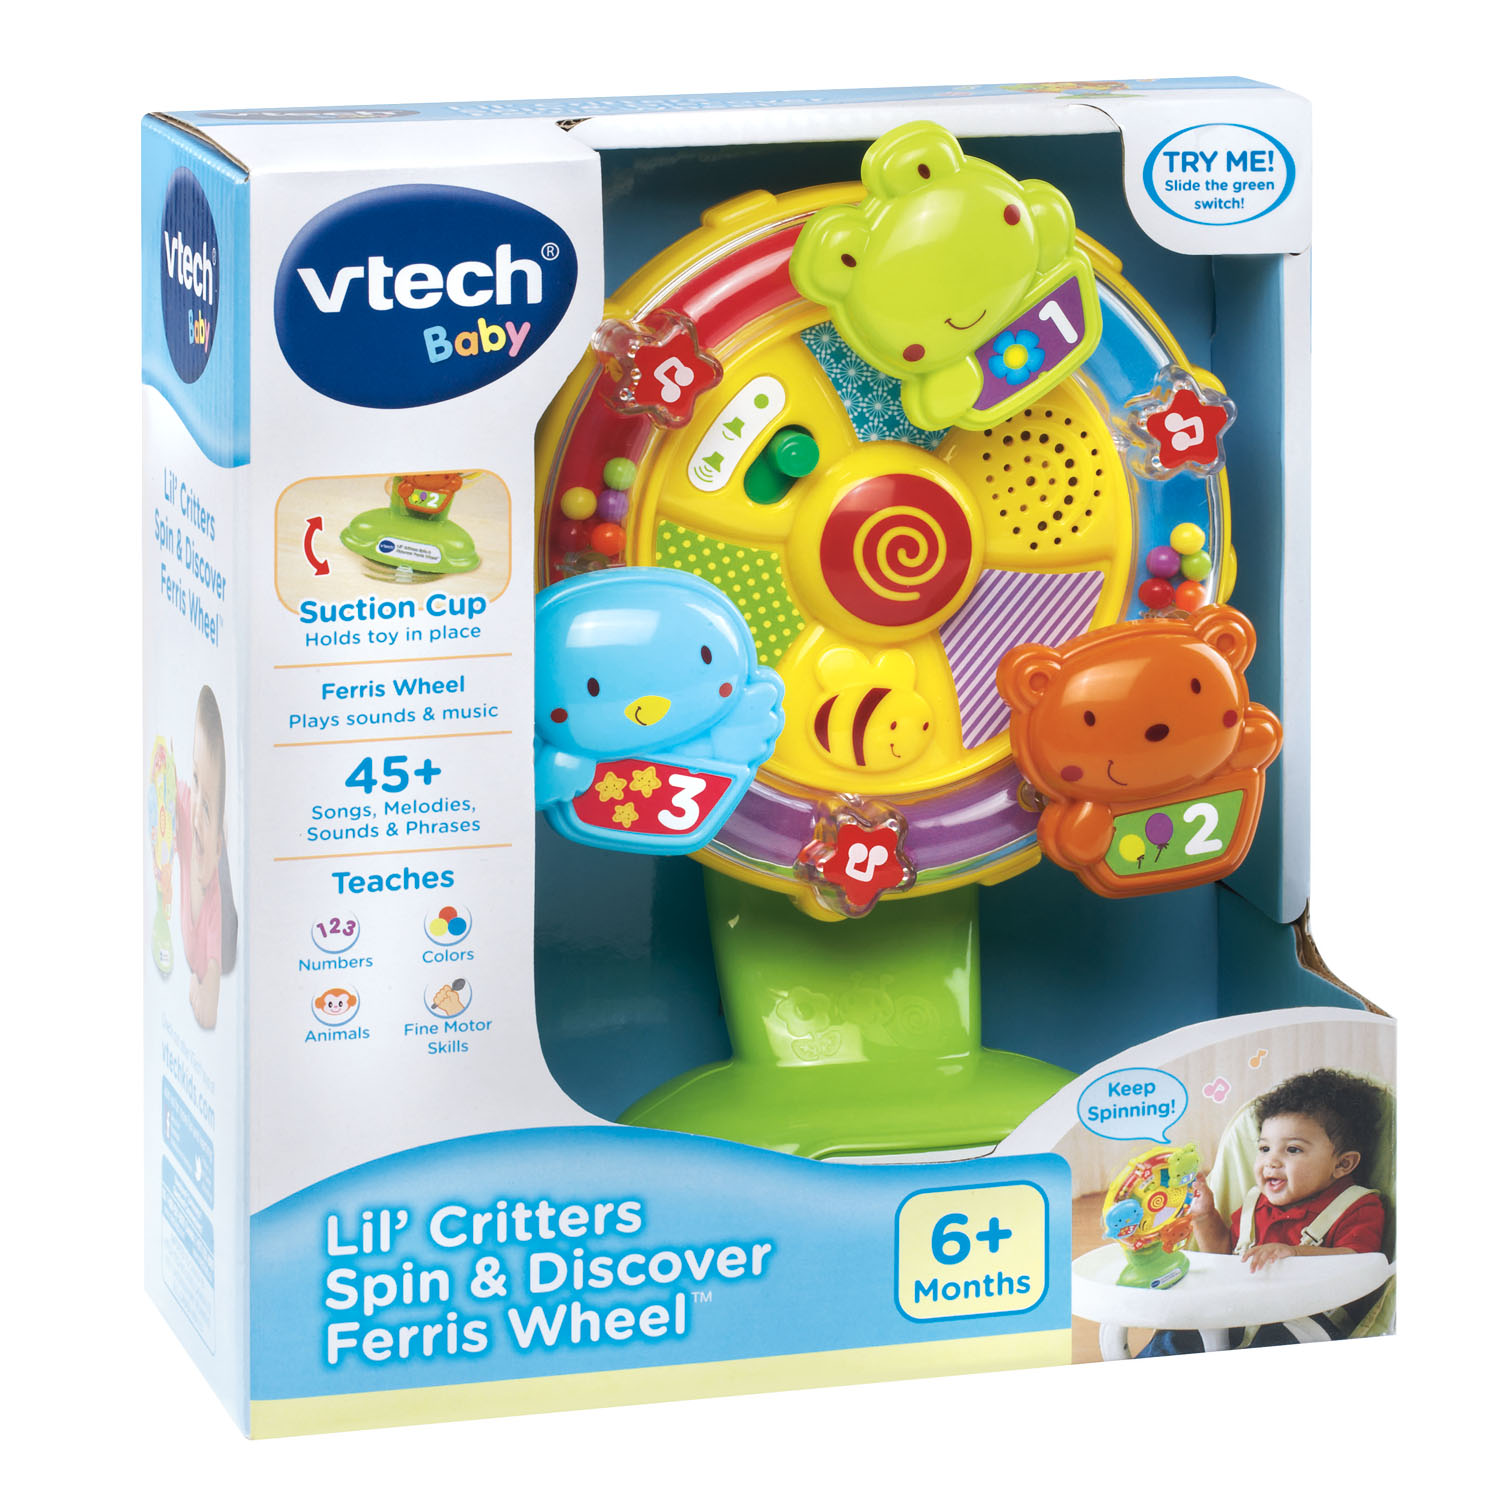 VTech Baby Lil Critters Spin and Discover Ferris Wheel by VTech Baby